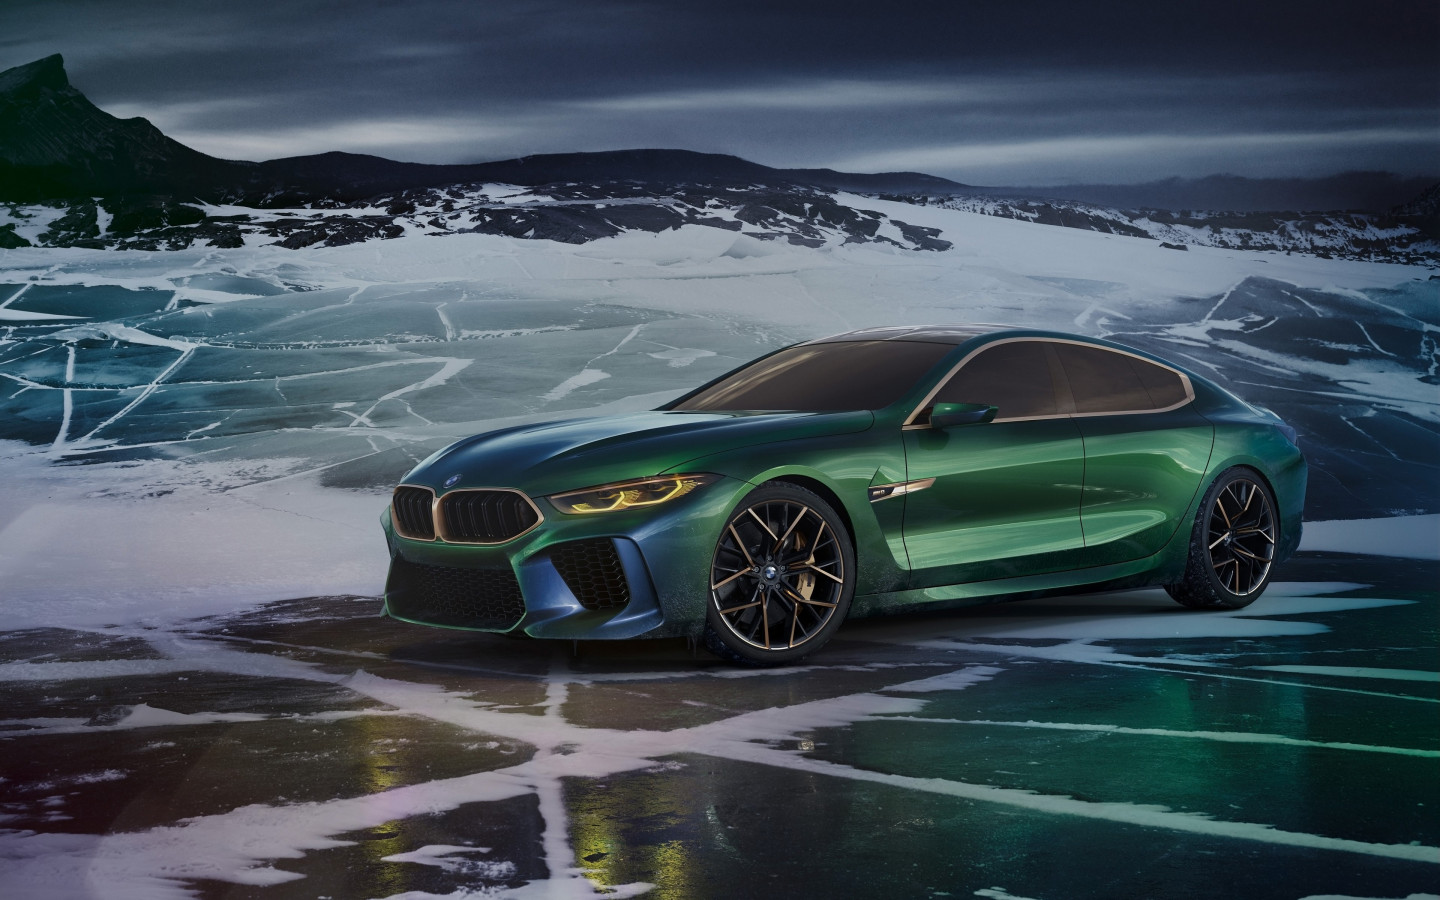 BMW Concept M8 Gran Coupe 2018 wallpaper 1440x900